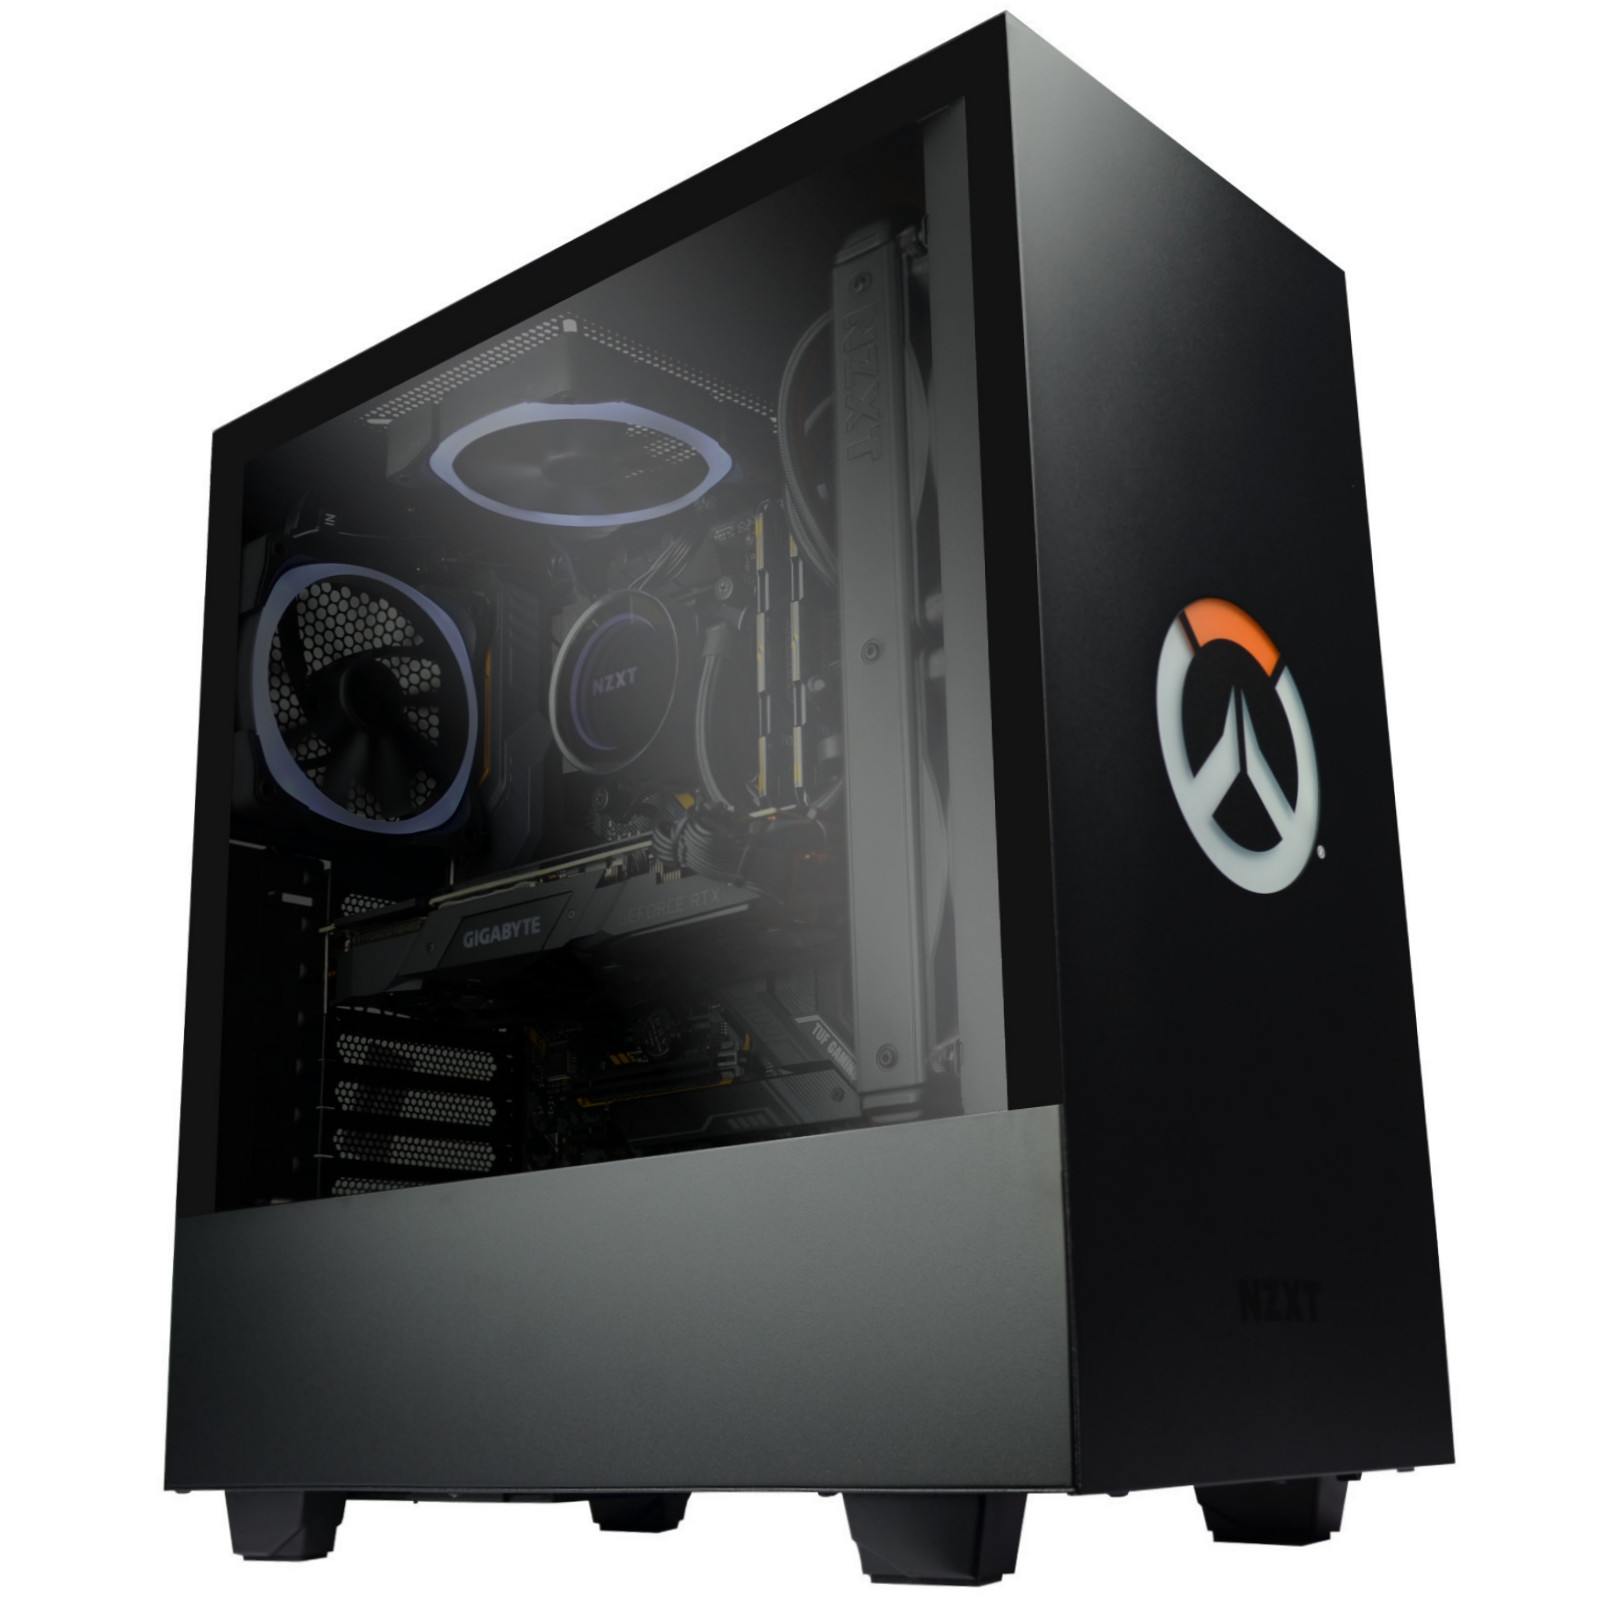 Buy the GGPC Overwatch RTX 2070 SUPER Gaming PC Intel i7